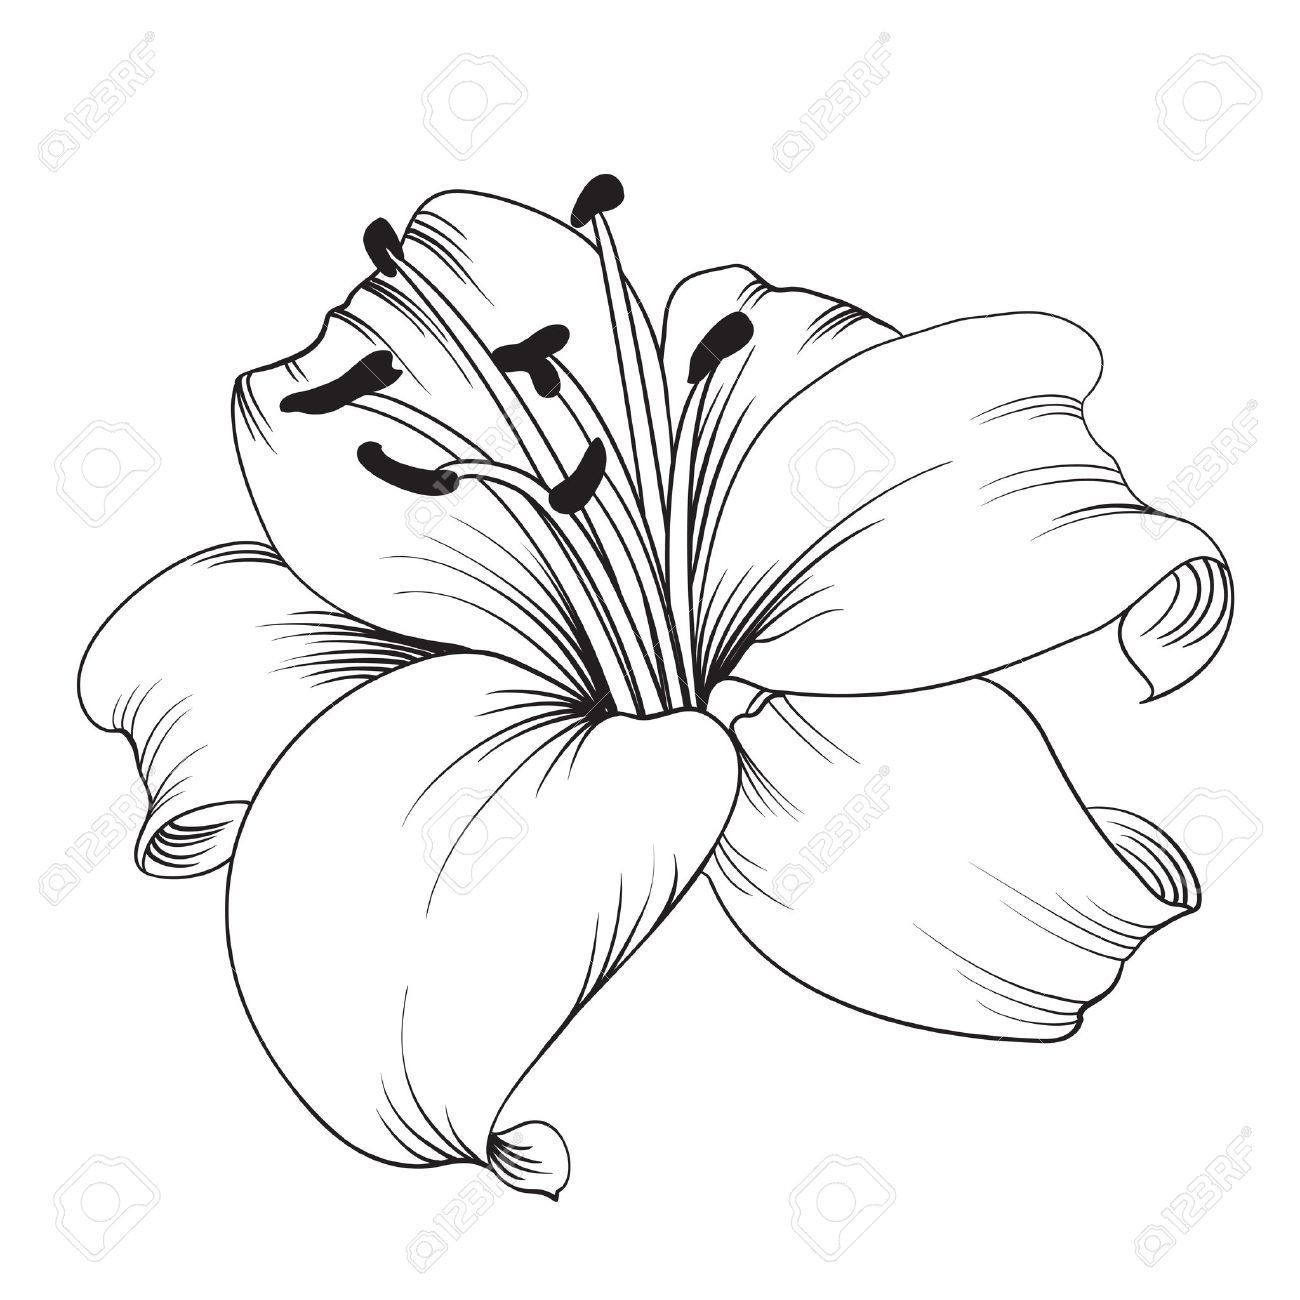 White lily isolated on a white background. Card with